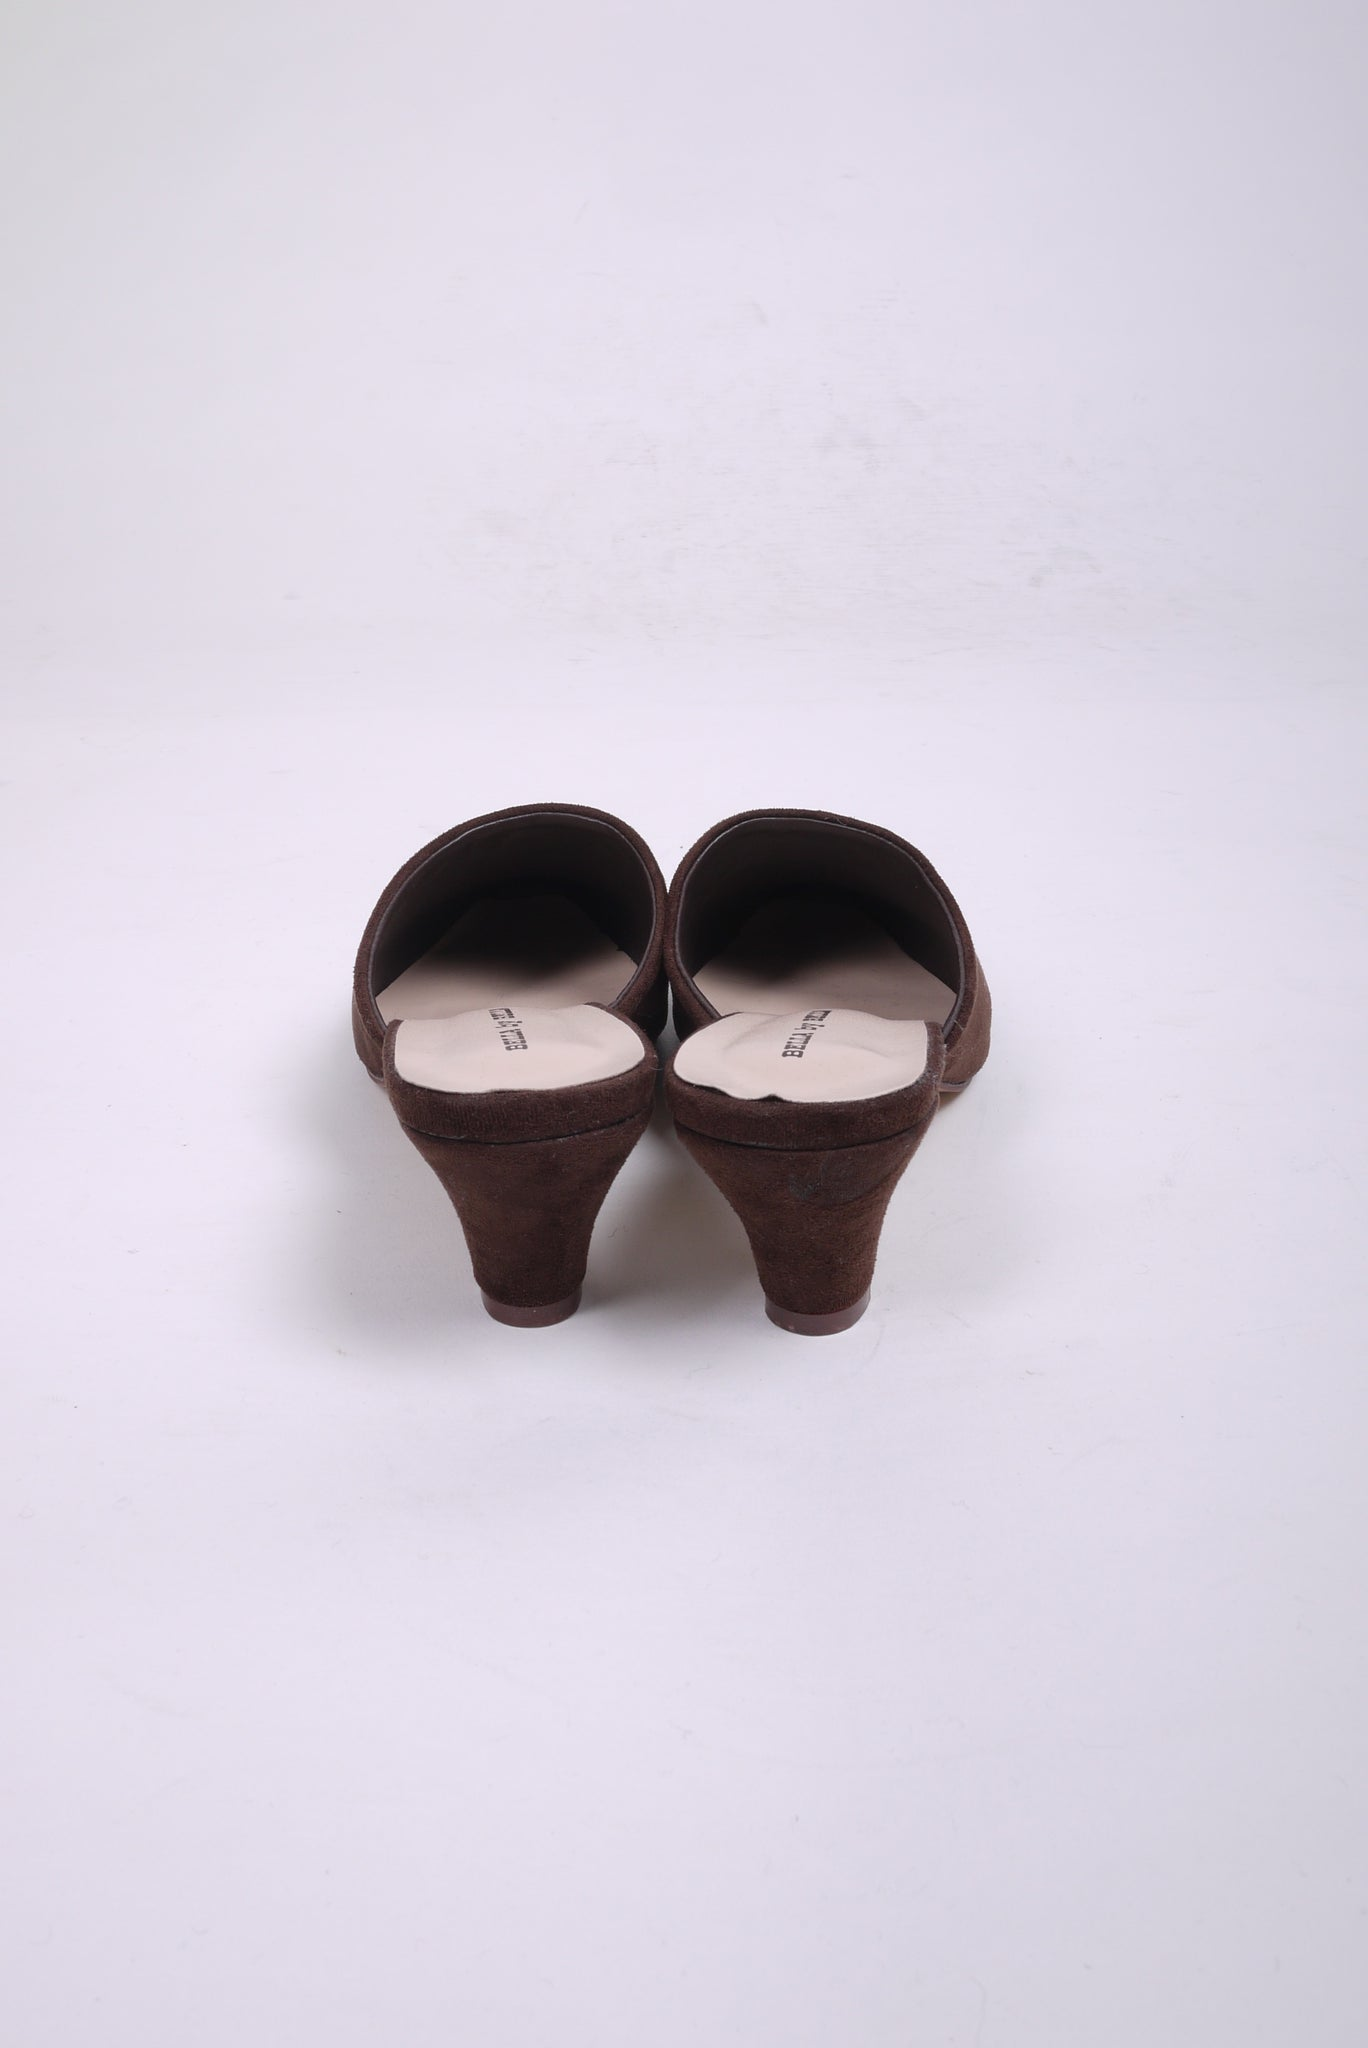 Sample Shoes 132